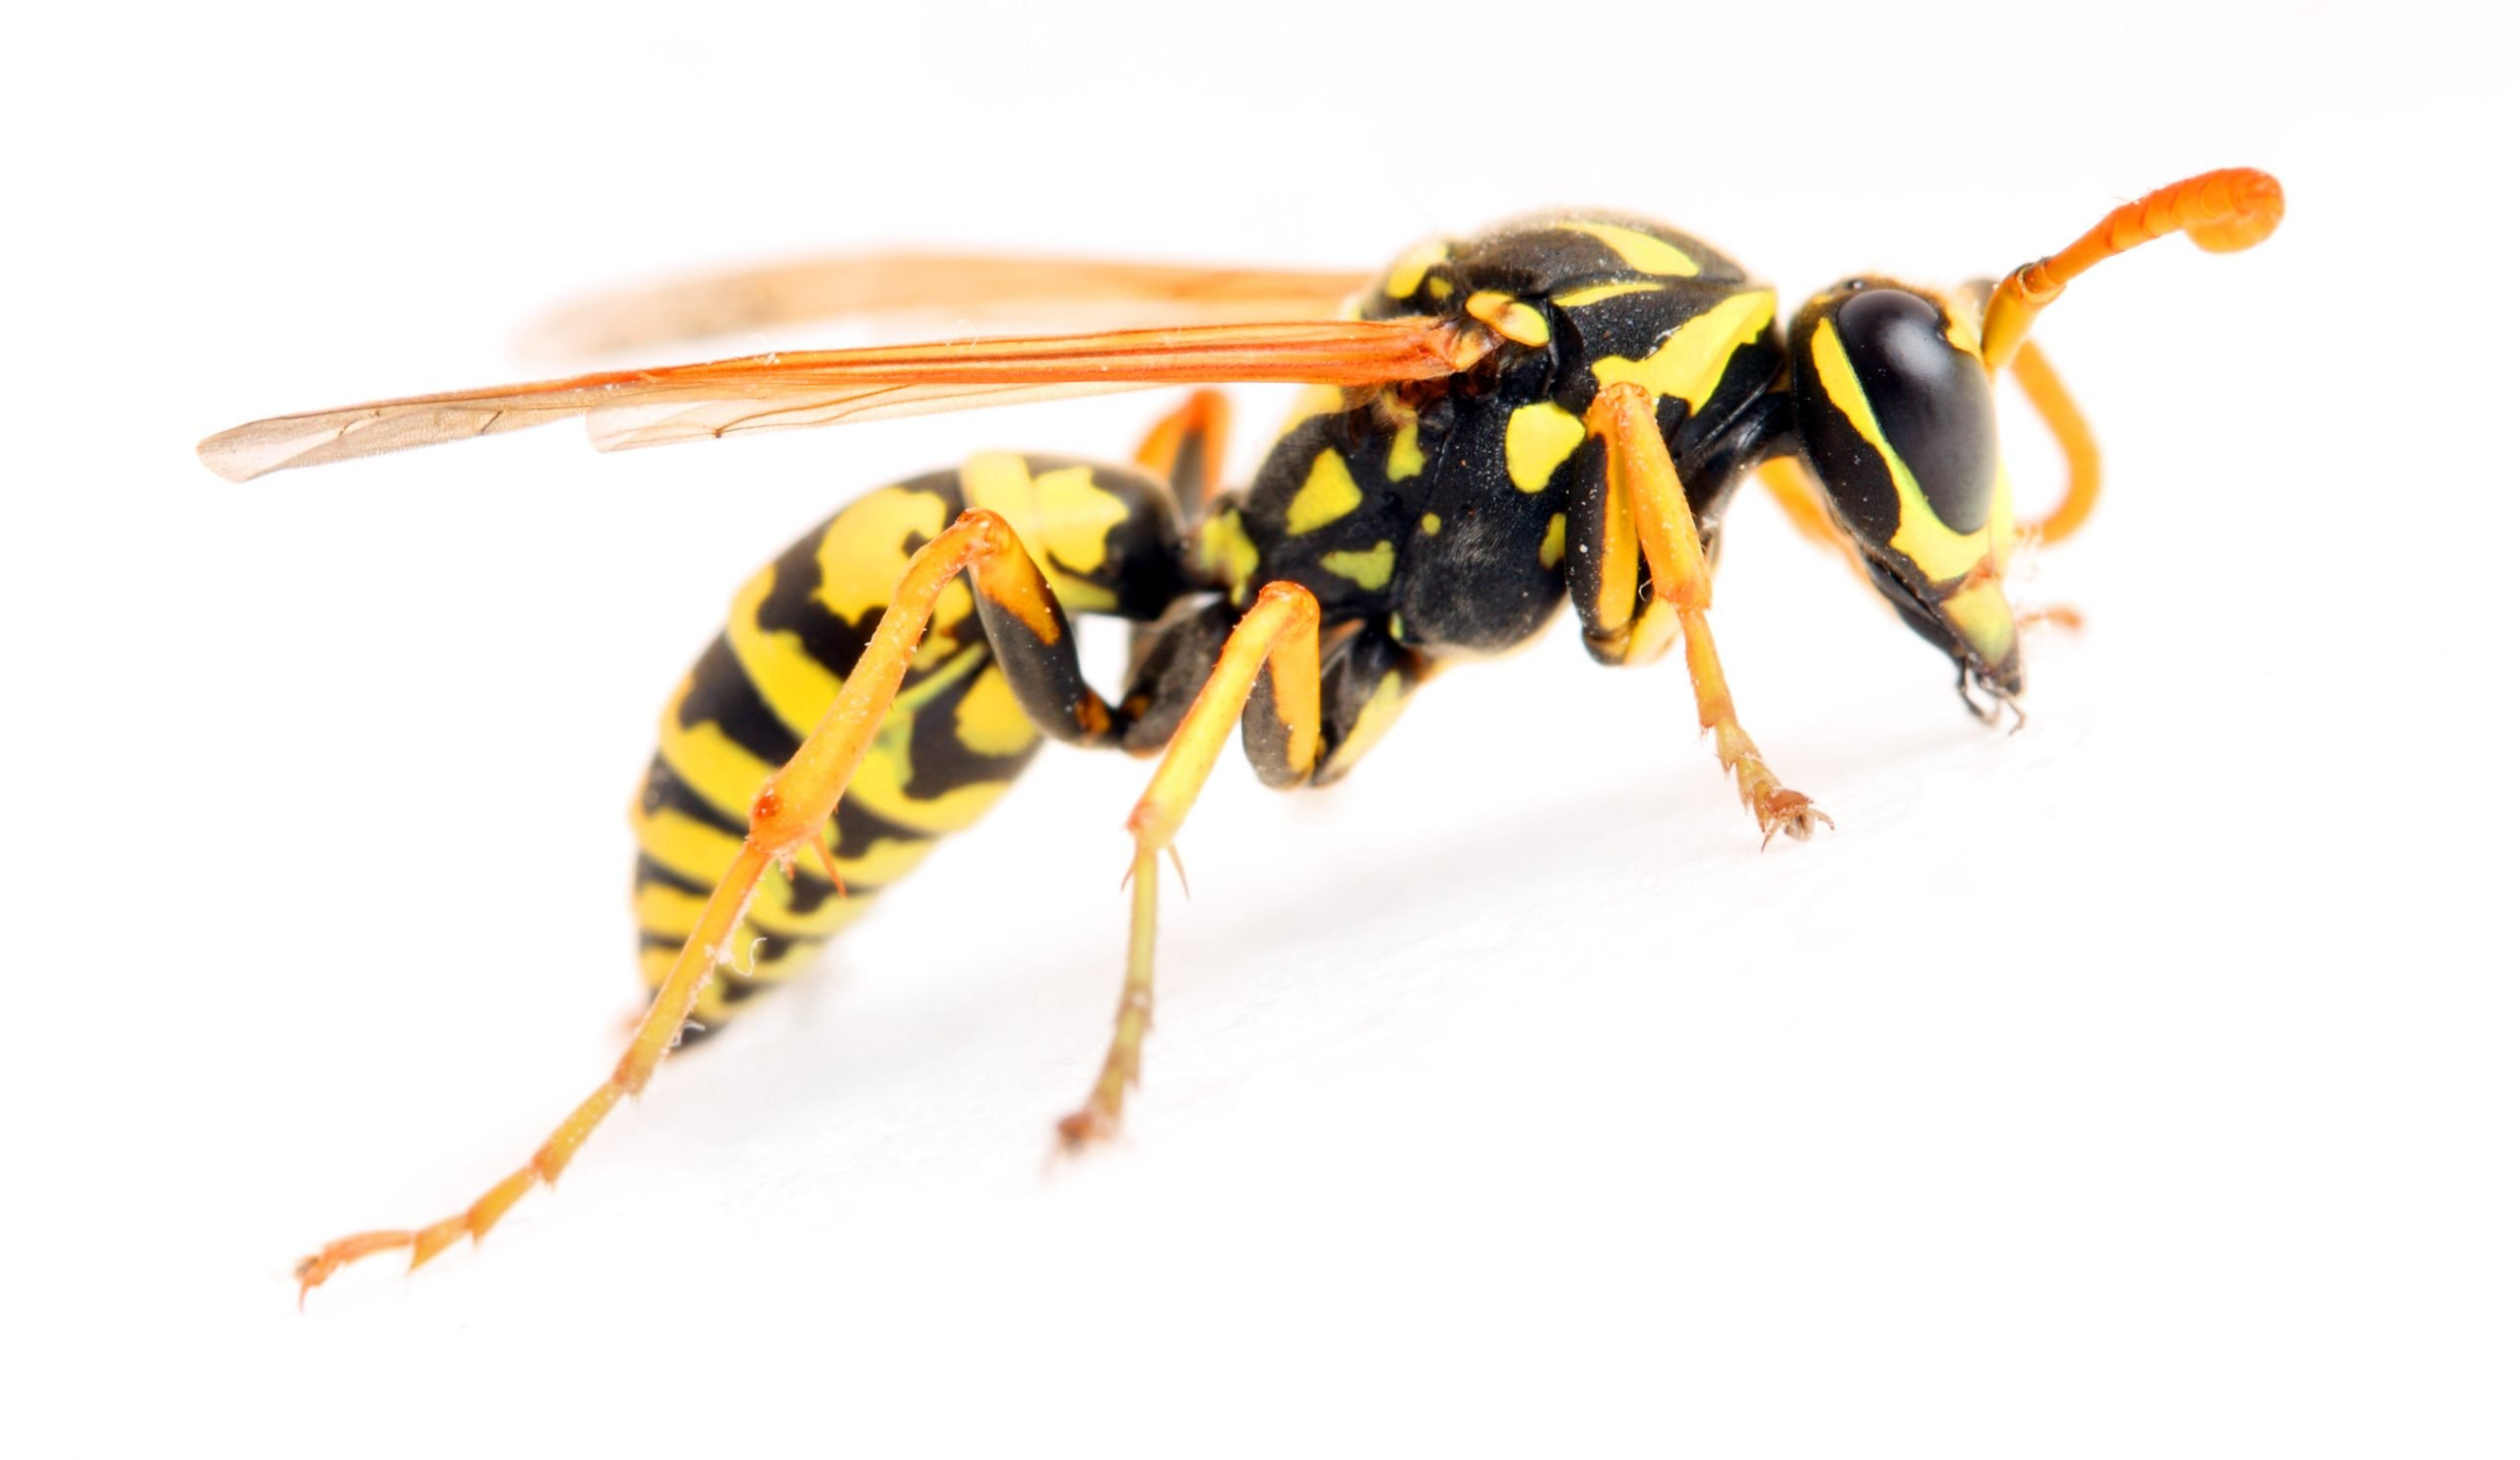 What do you know about yellow jackets?